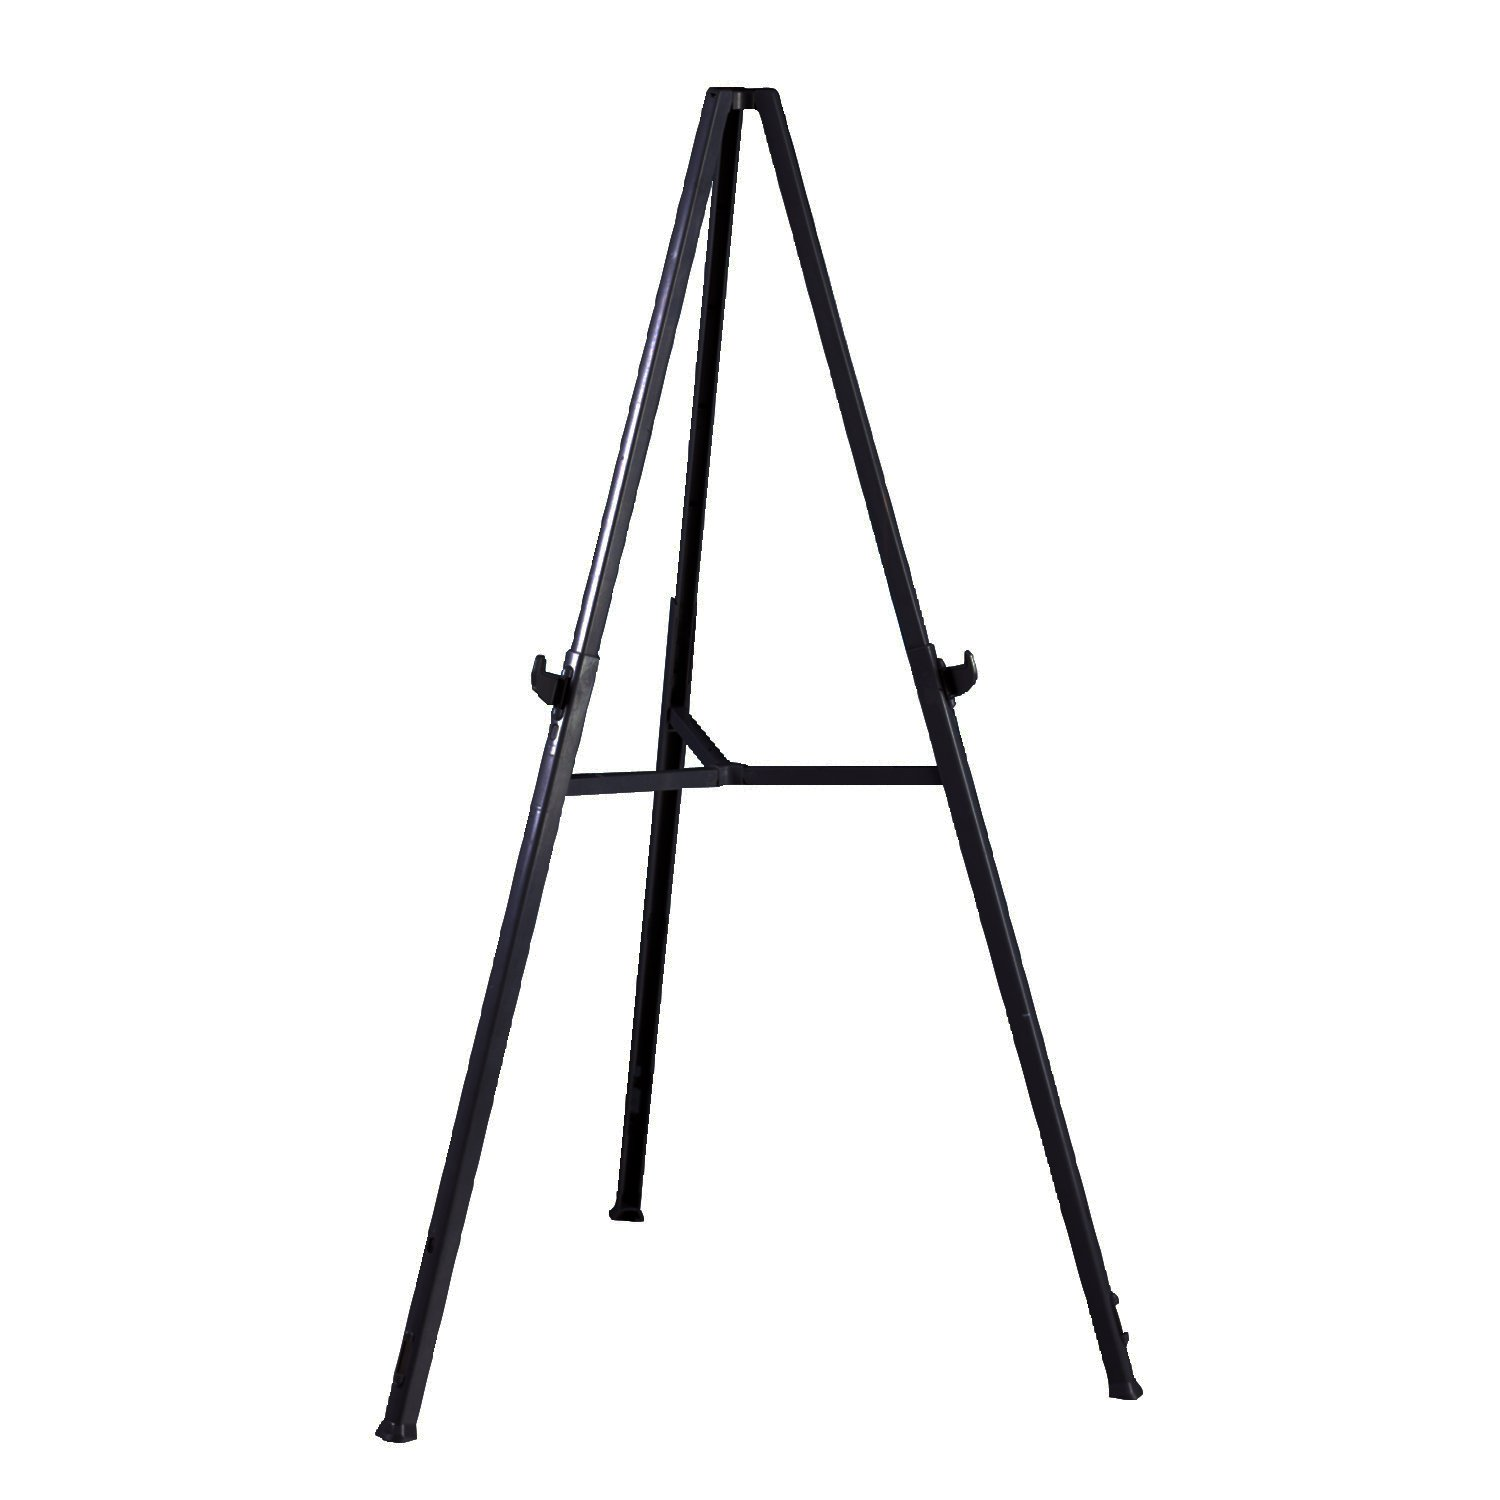 Ghent 19250 Triumph Folding Display Easel- 37''- 62'' adjustable hieght for table top/floor